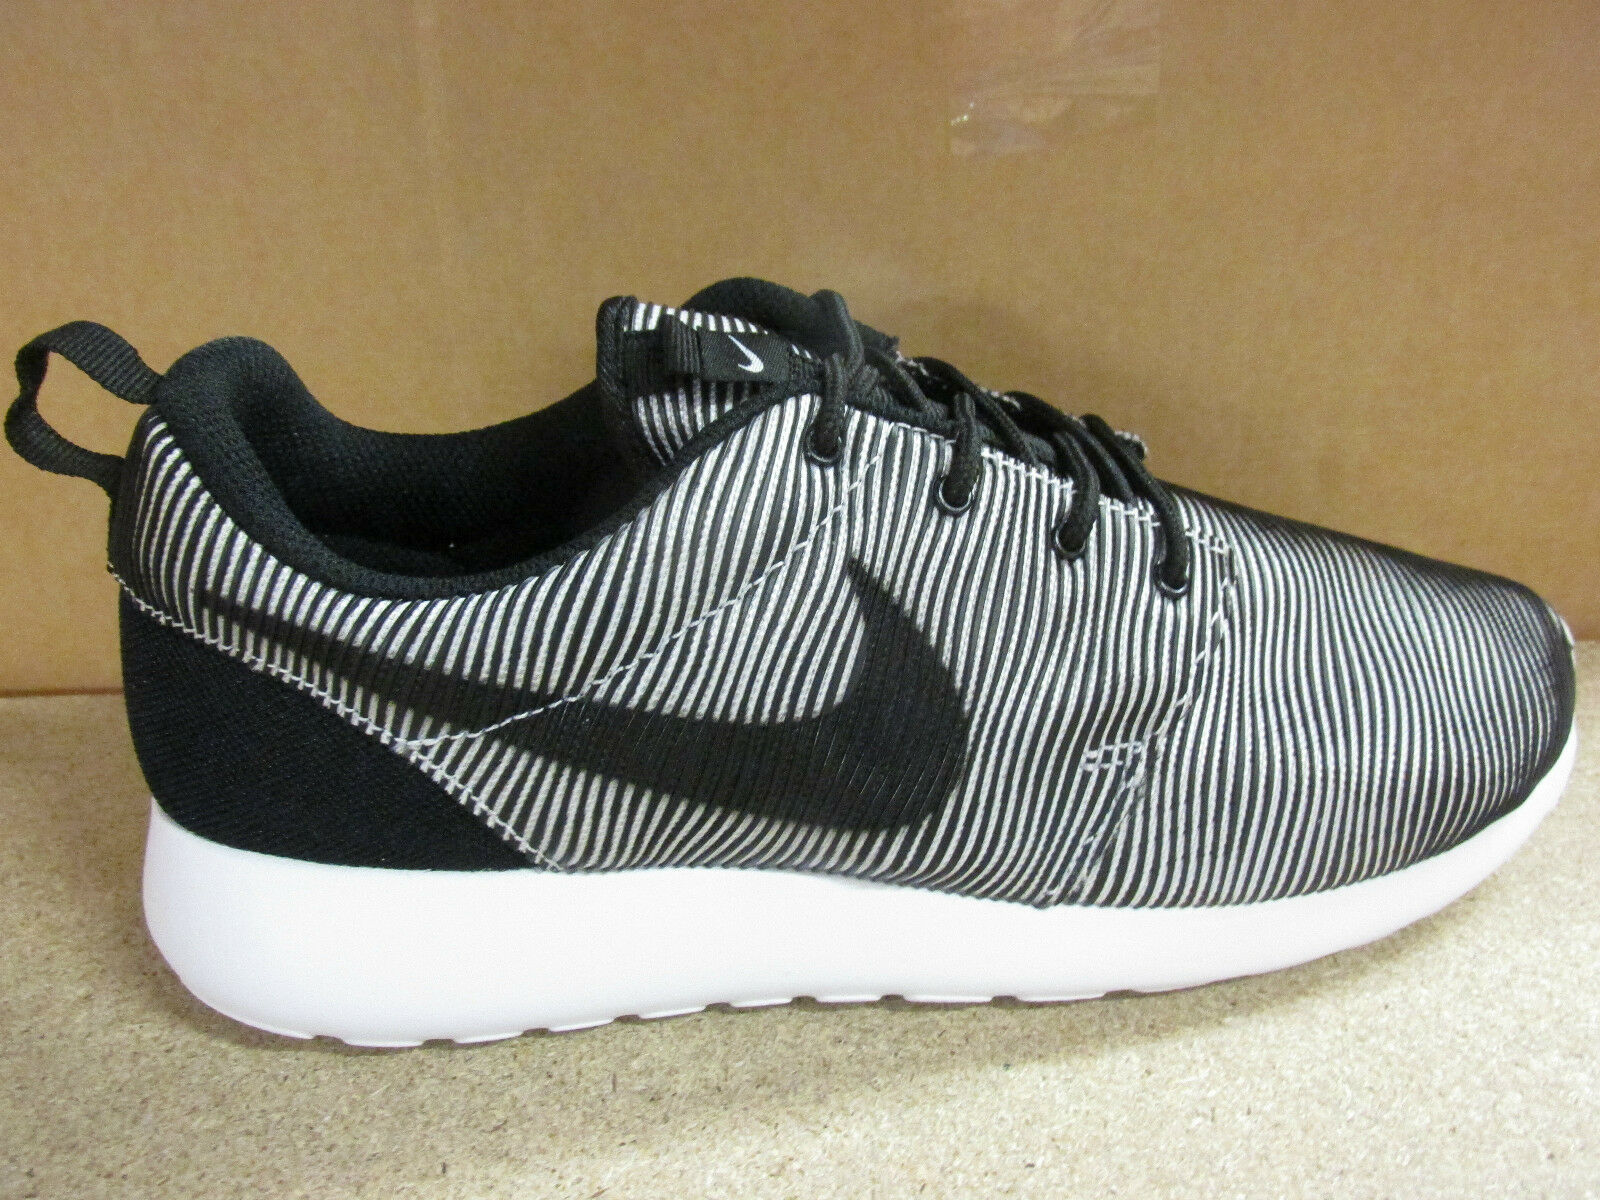 a83c5bf1b54cb ... Nike Roshe One Prem Plus Mens Trainers 807611 100 100 100 Sneakers Shoes  4d422d ...